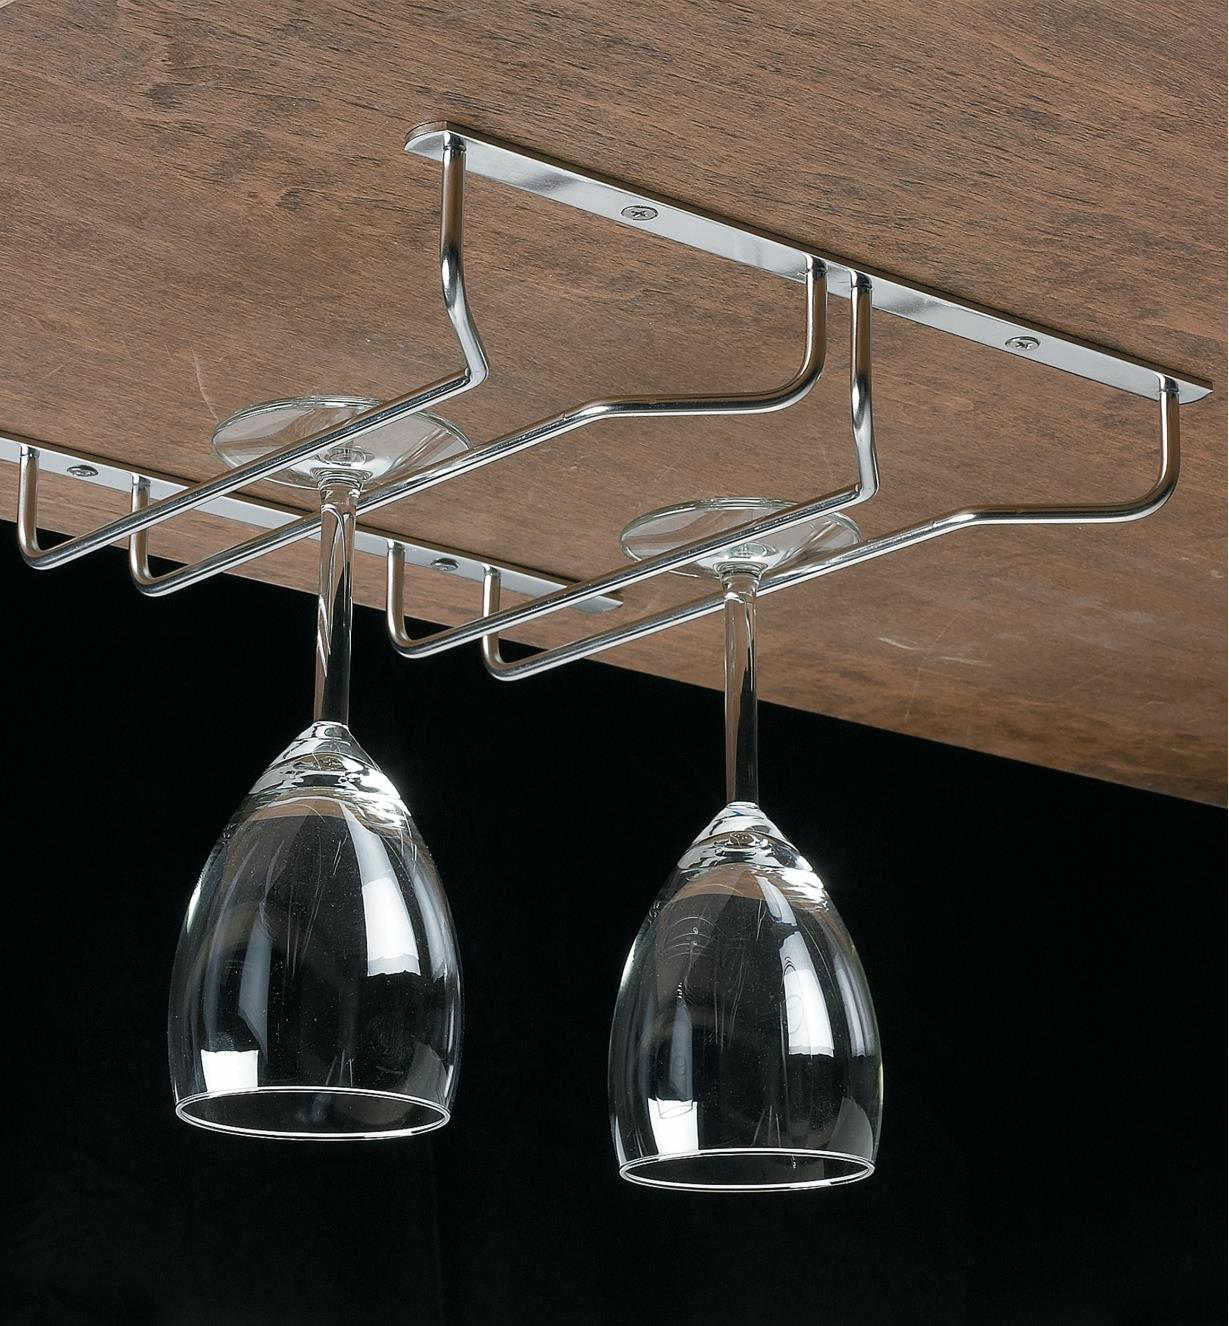 "Two wine glasses hanging on an installed 10 1/2"" Double Rack"